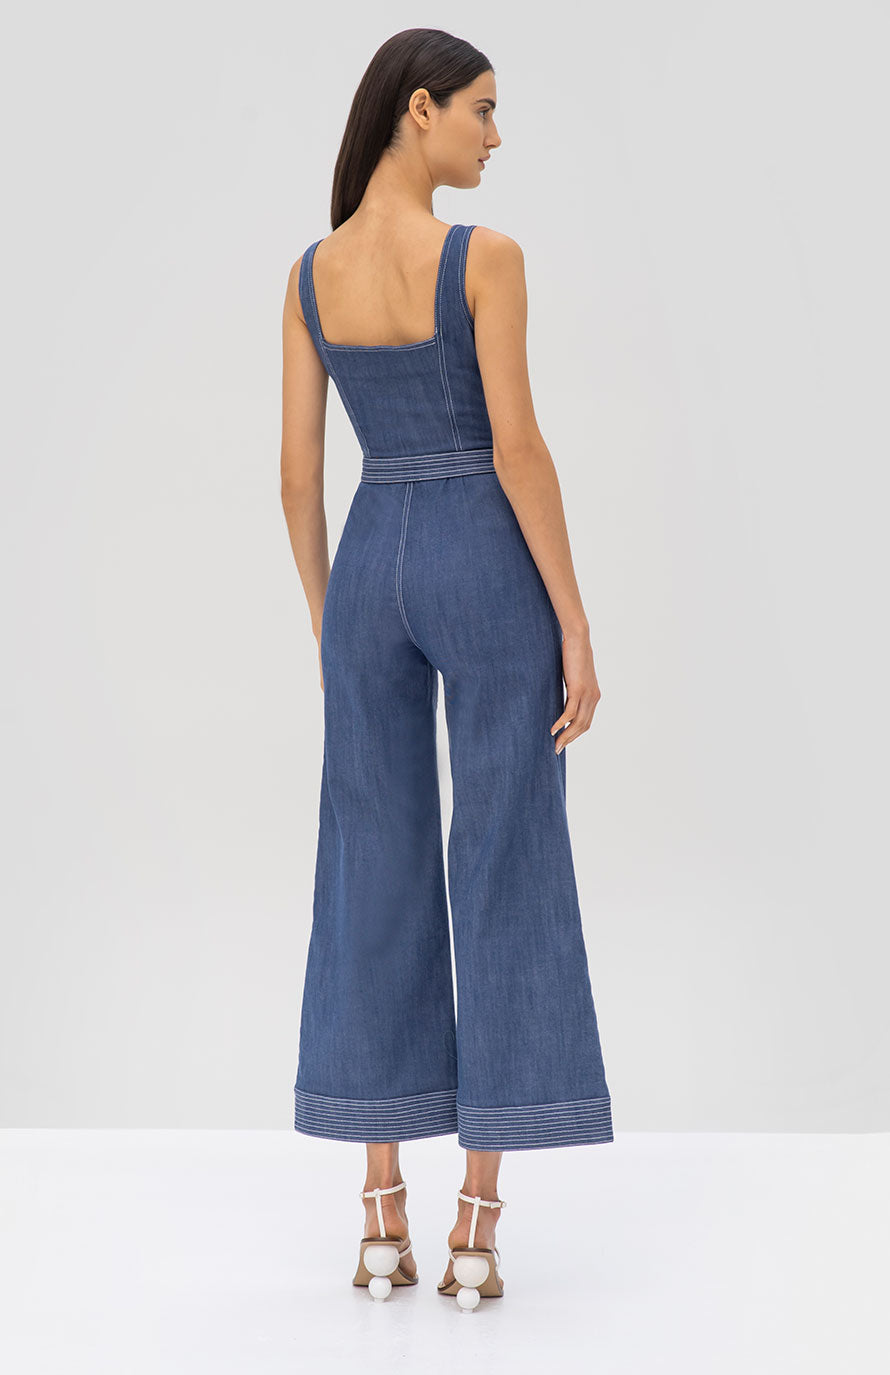 Alexis Bristol Jumpsuit in Stone Blue from the Pre Fall 2019 Ready To Wear Collection - Rear View